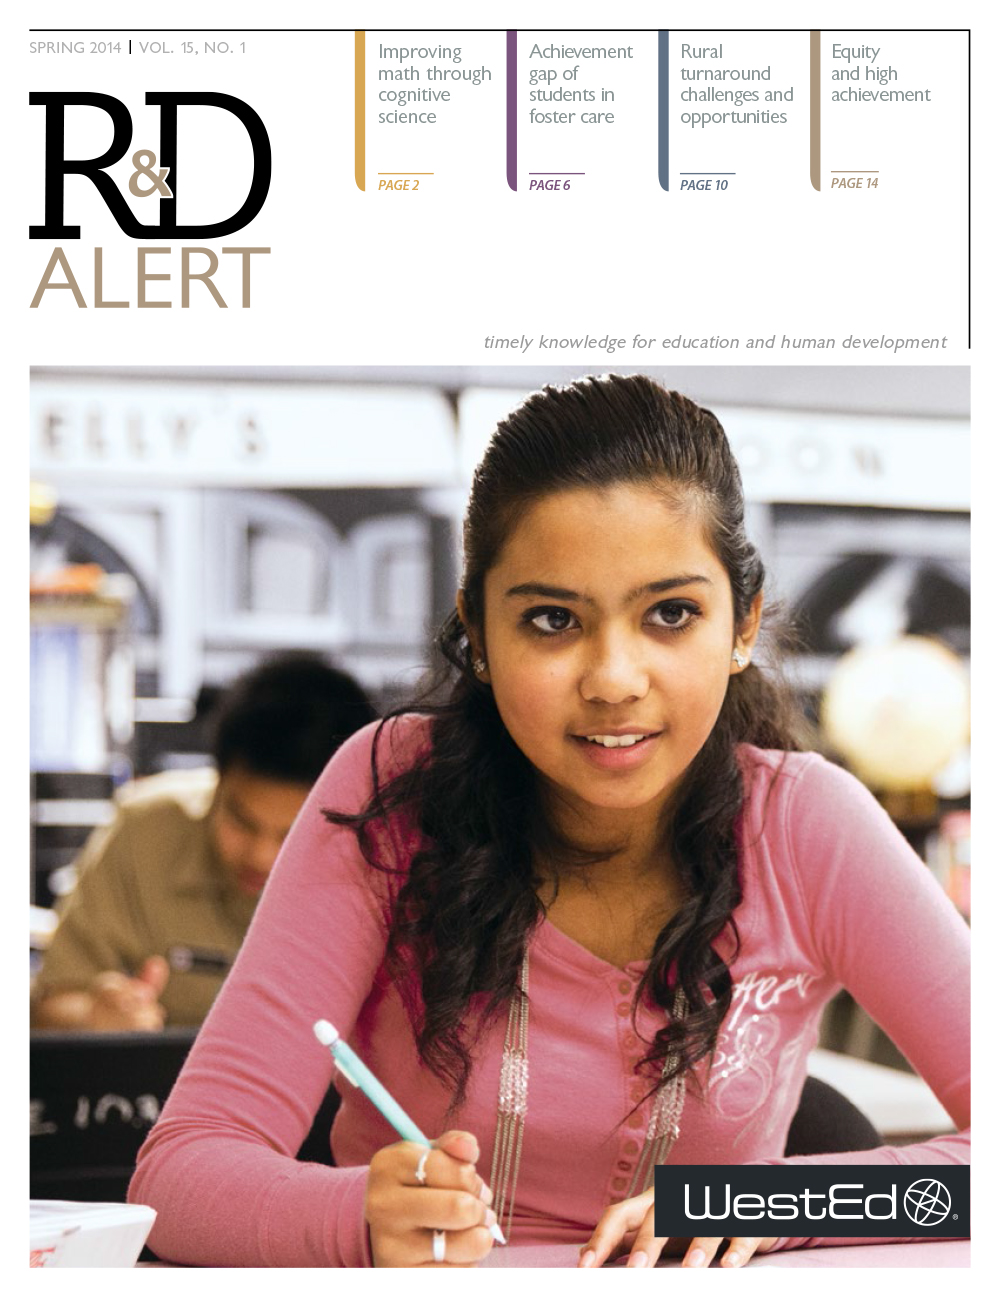 Cover image for R&D Alert Spring 2014 Vol 15, #1